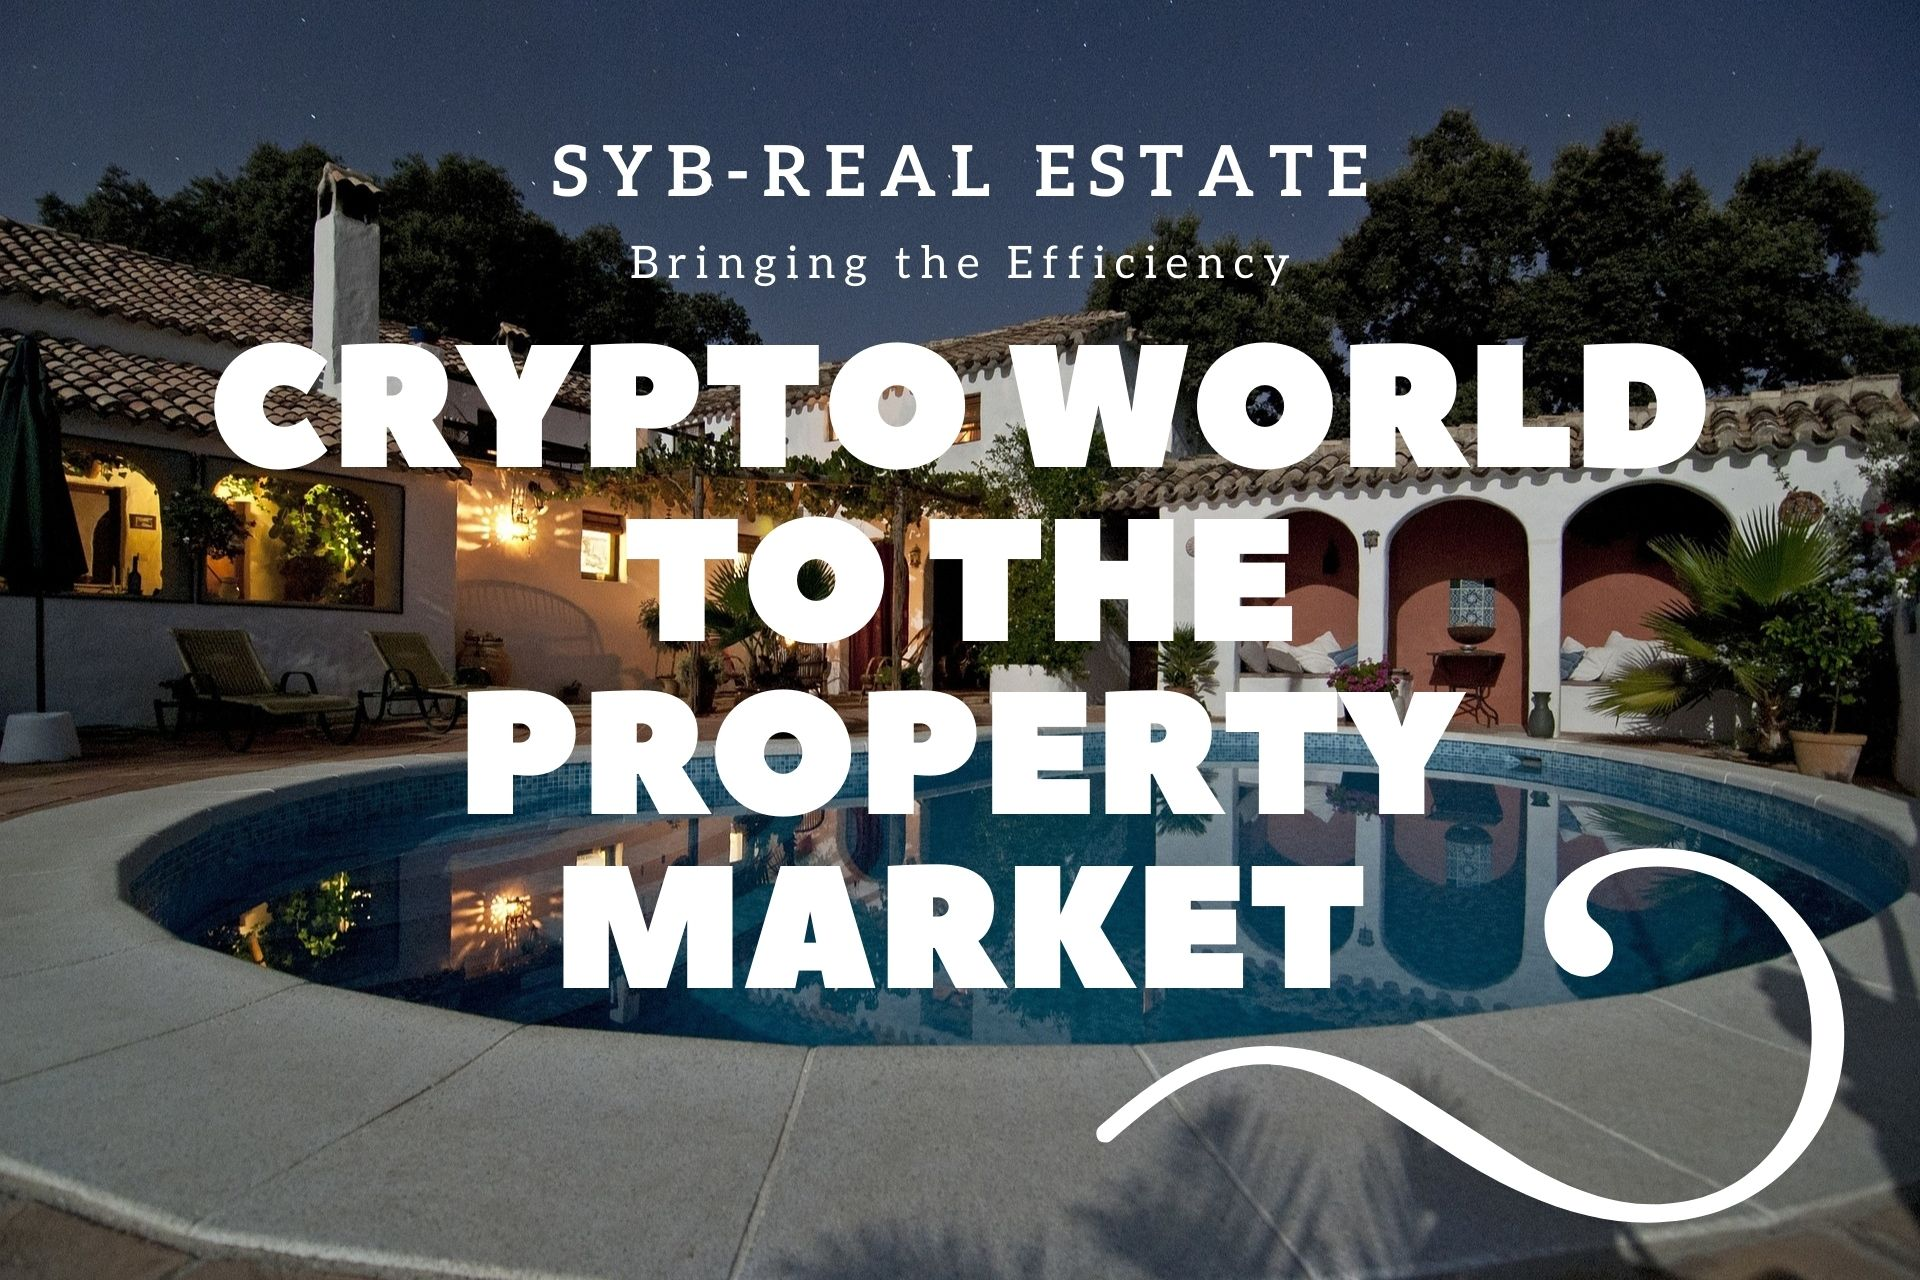 SYB Real Estate